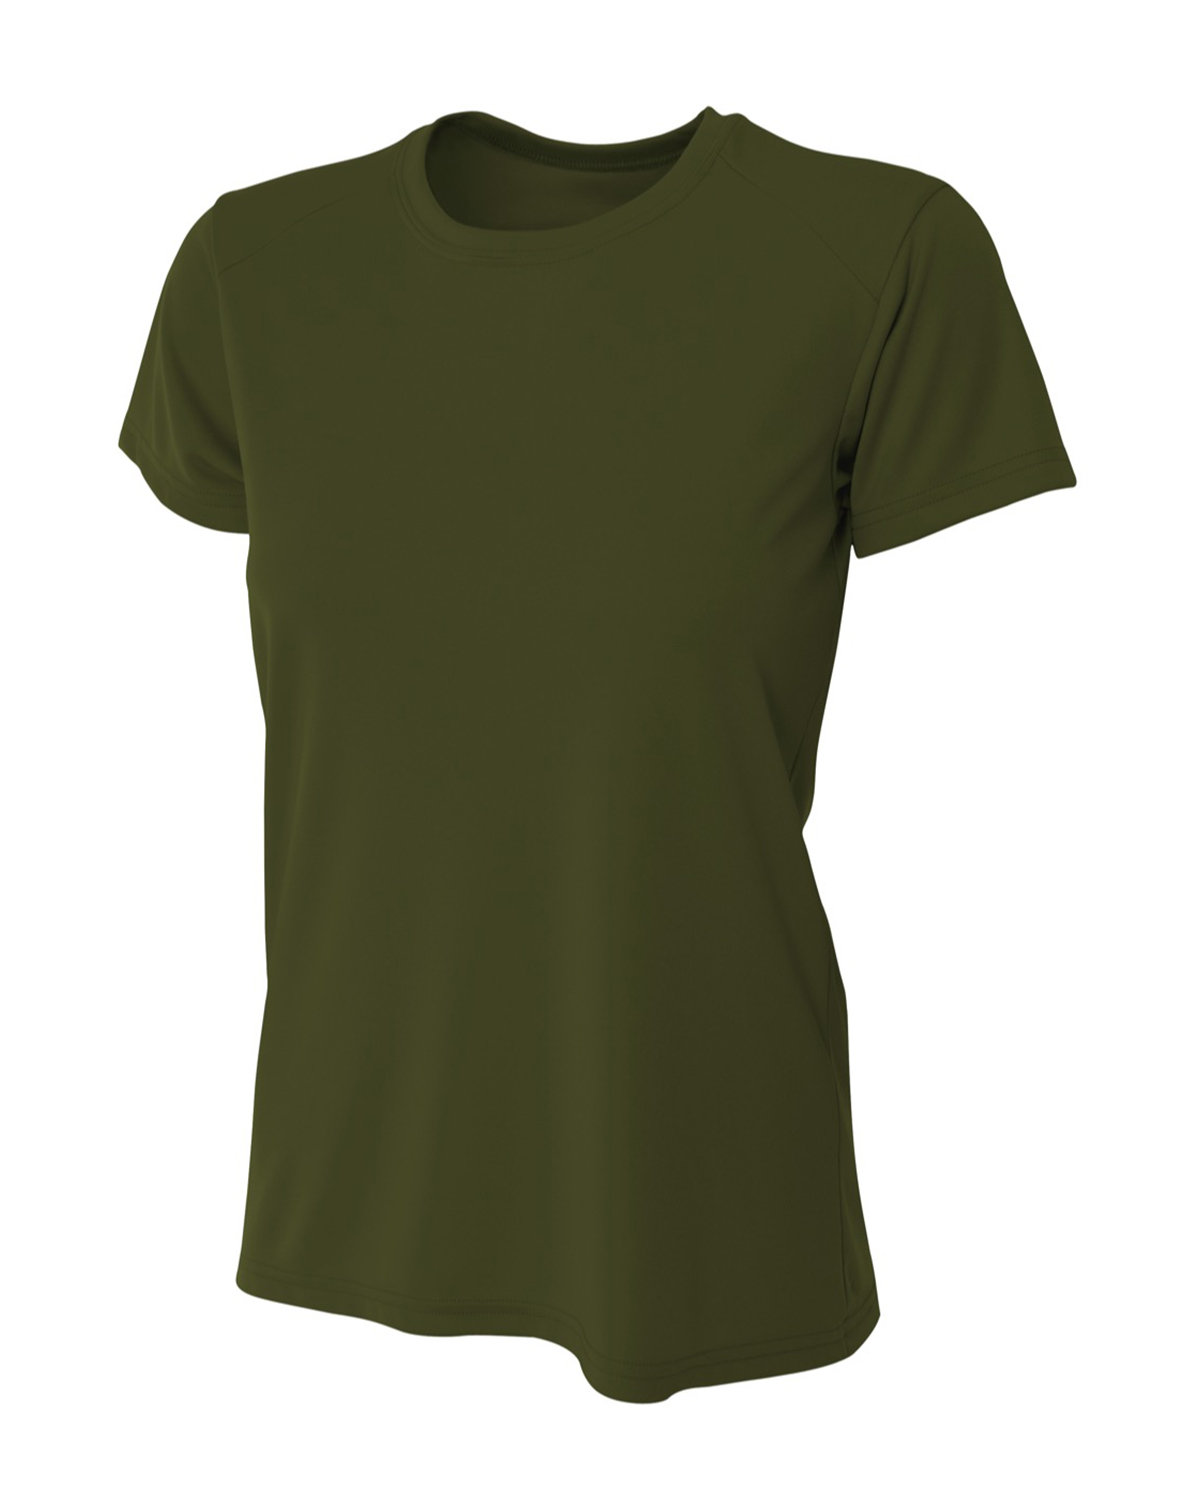 A4 Ladies' Cooling Performance T-Shirt MILITARY GREEN